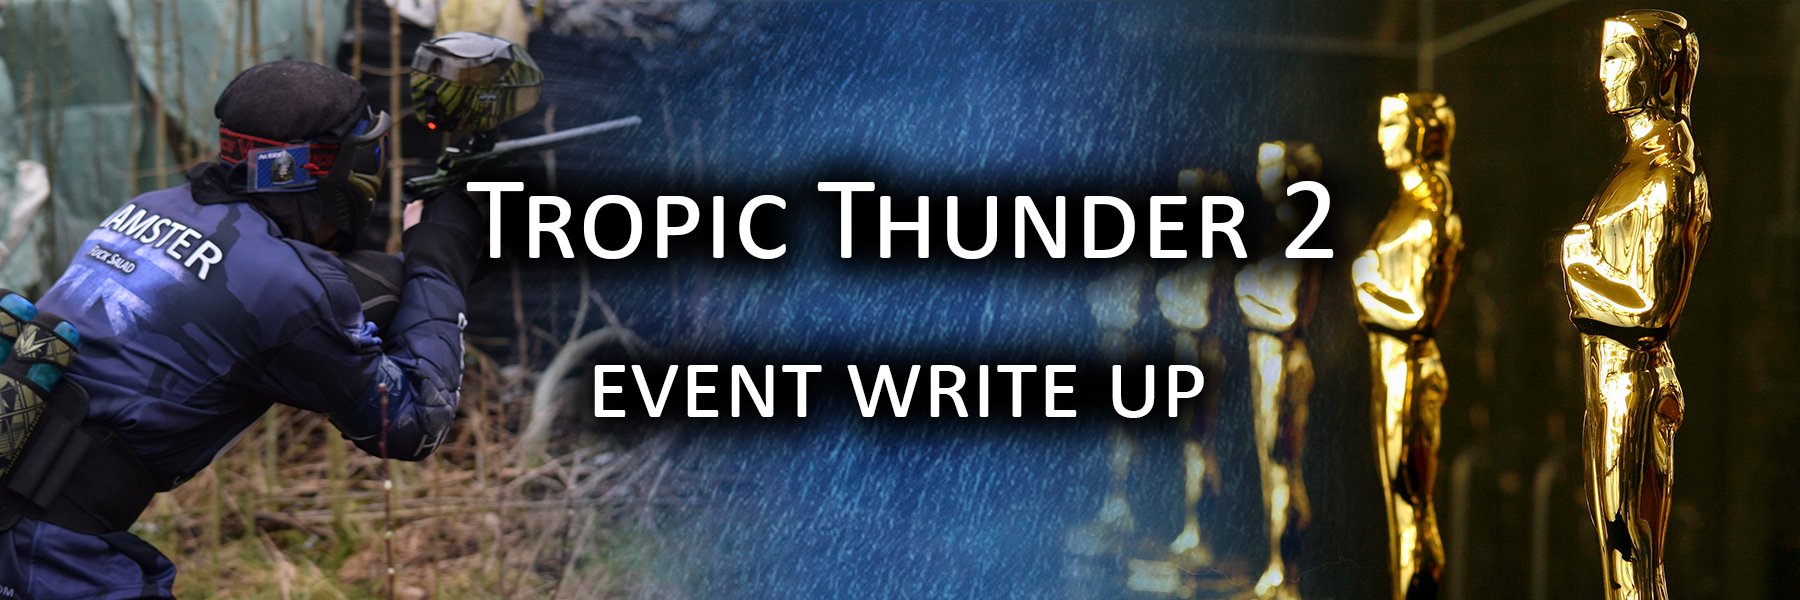 Tropic Thunder Event Writeup